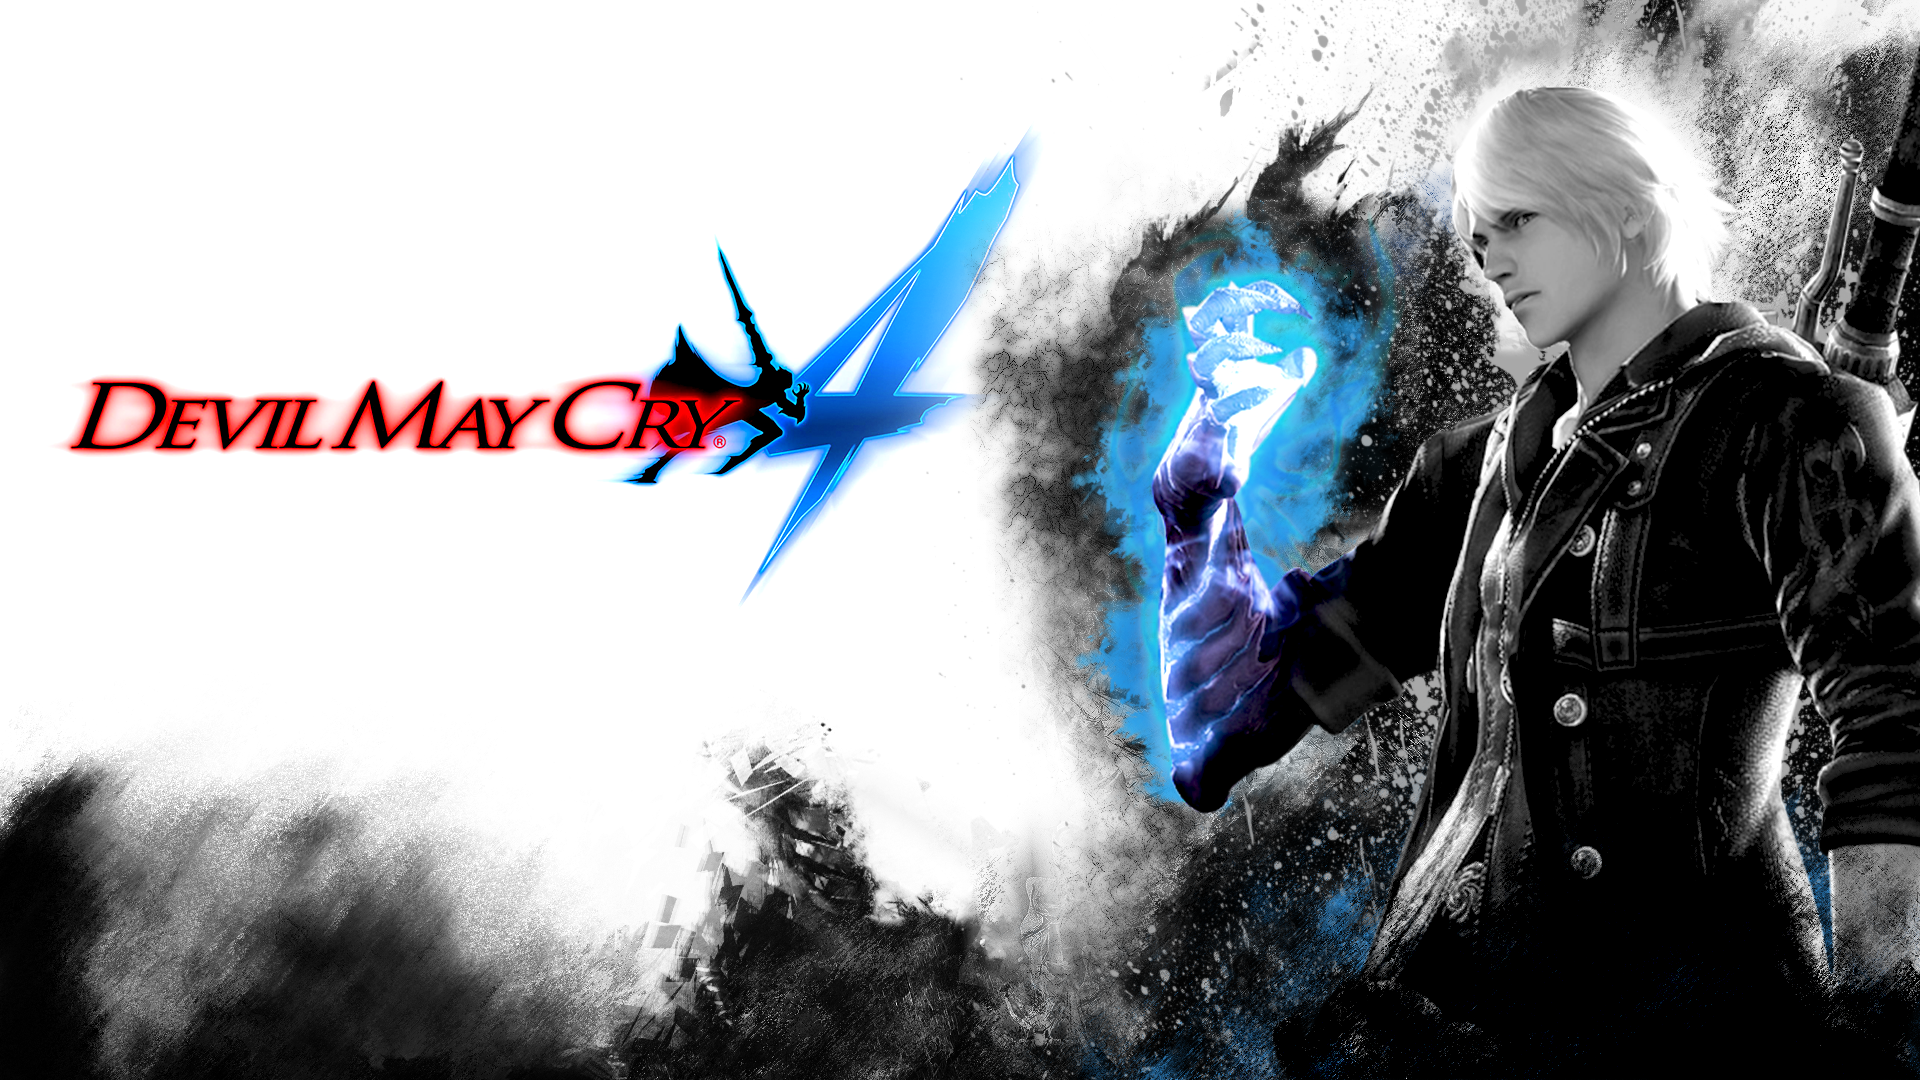 Free Nice Devil May Cry Images, Julieta Glorioso